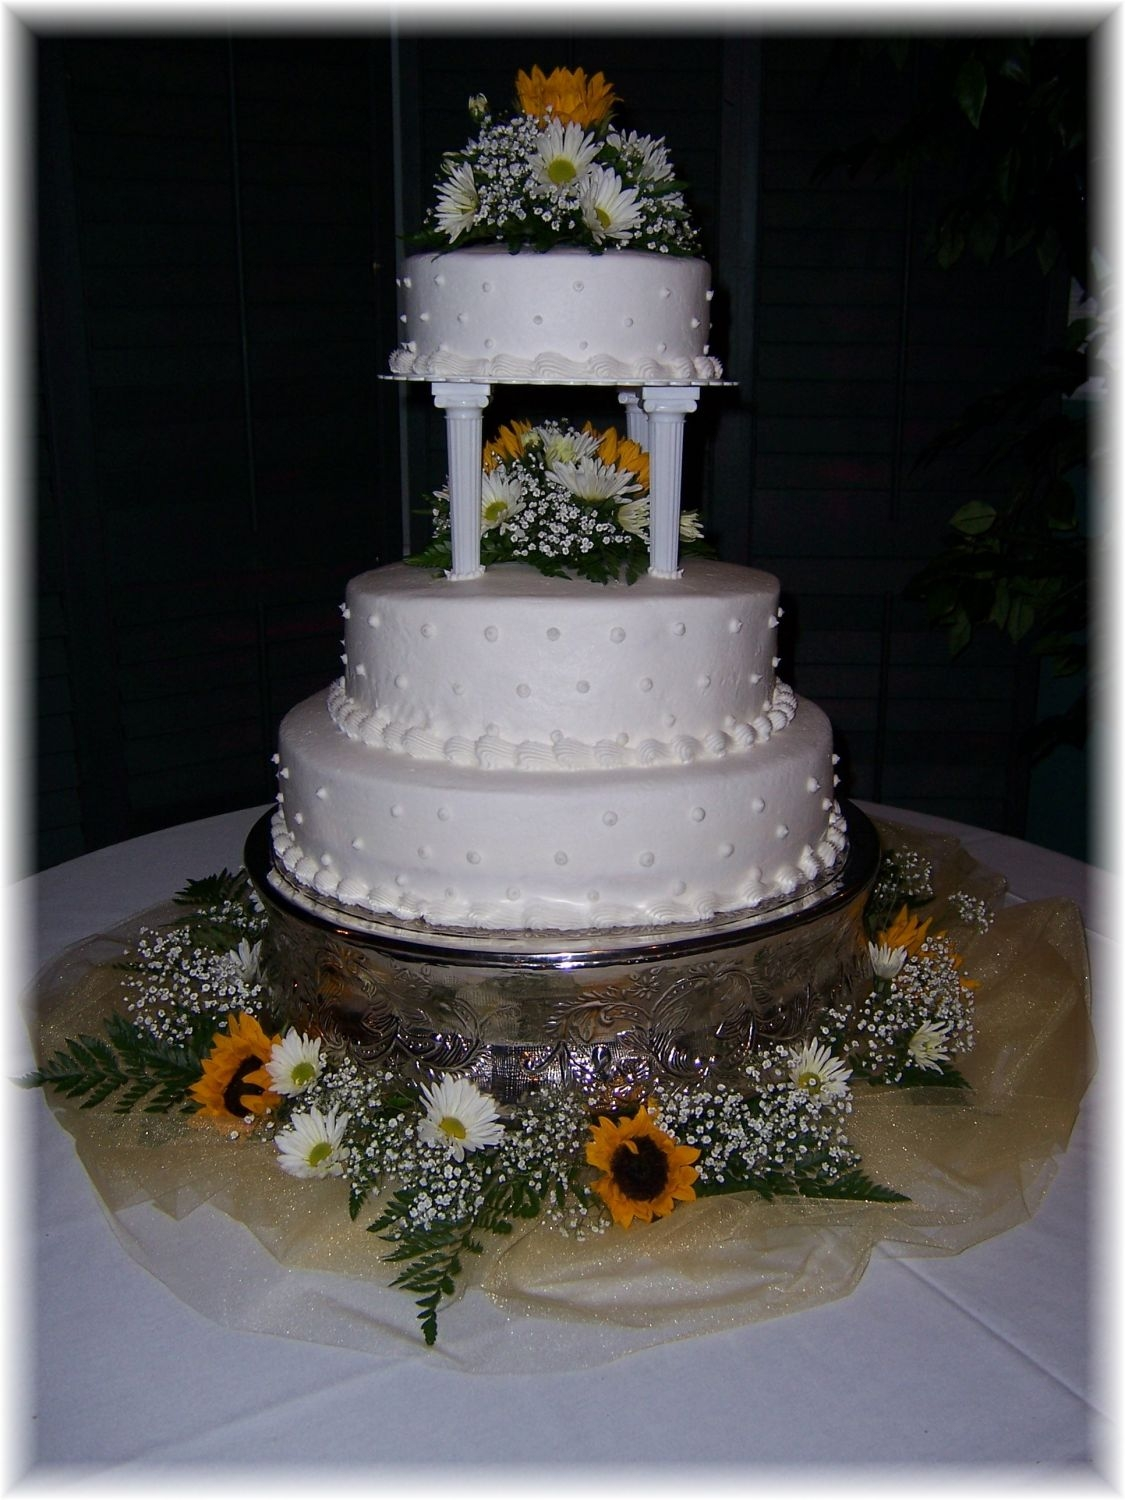 Sunflower_Simply_Devoted.jpg three tiered buttercream cake with fresh sunflowers and daisys